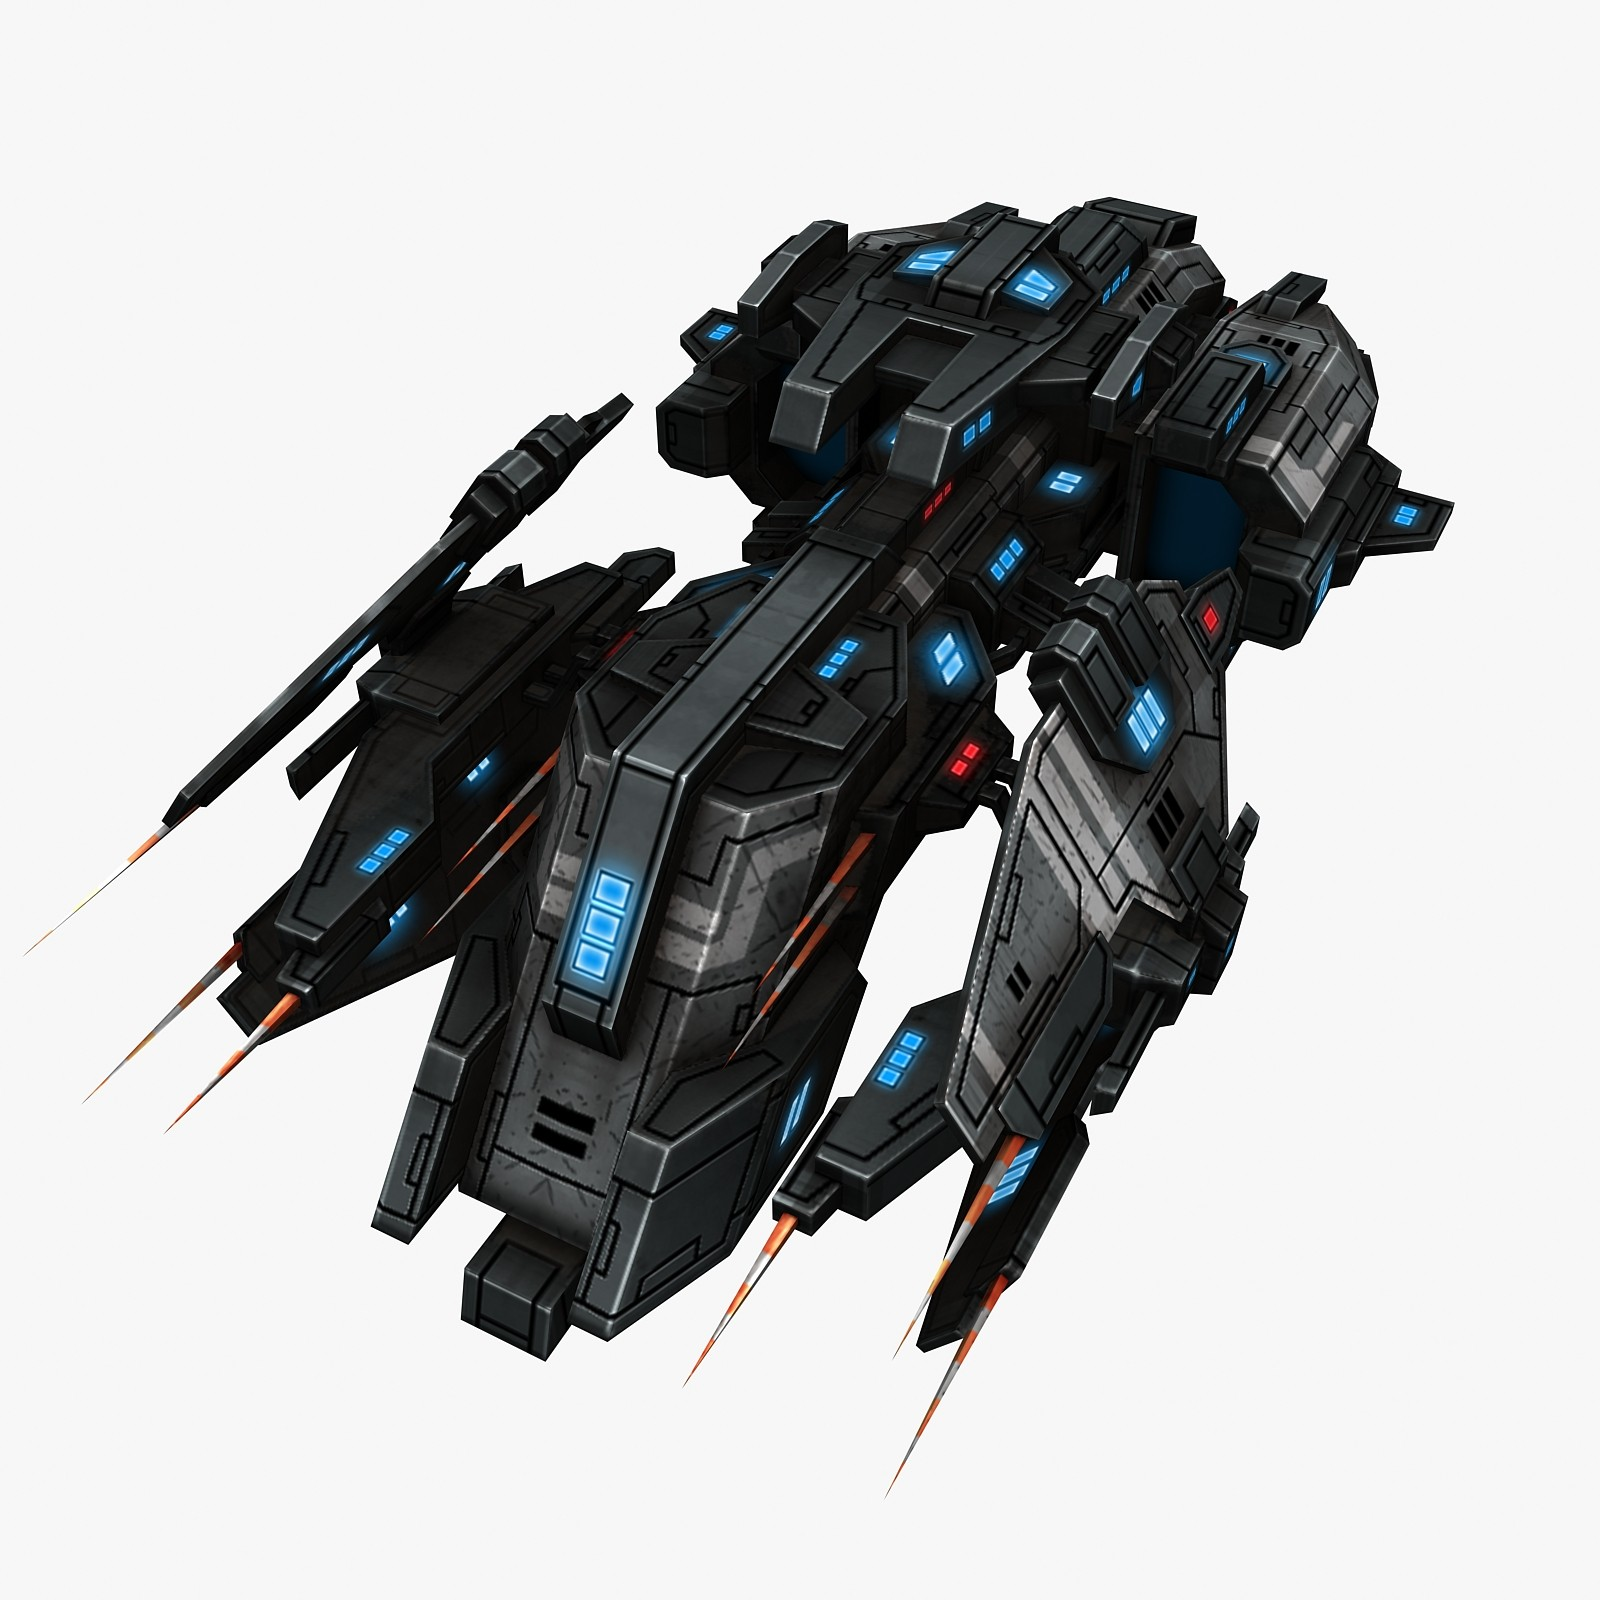 battleship_fighter_2_preview_0.jpg